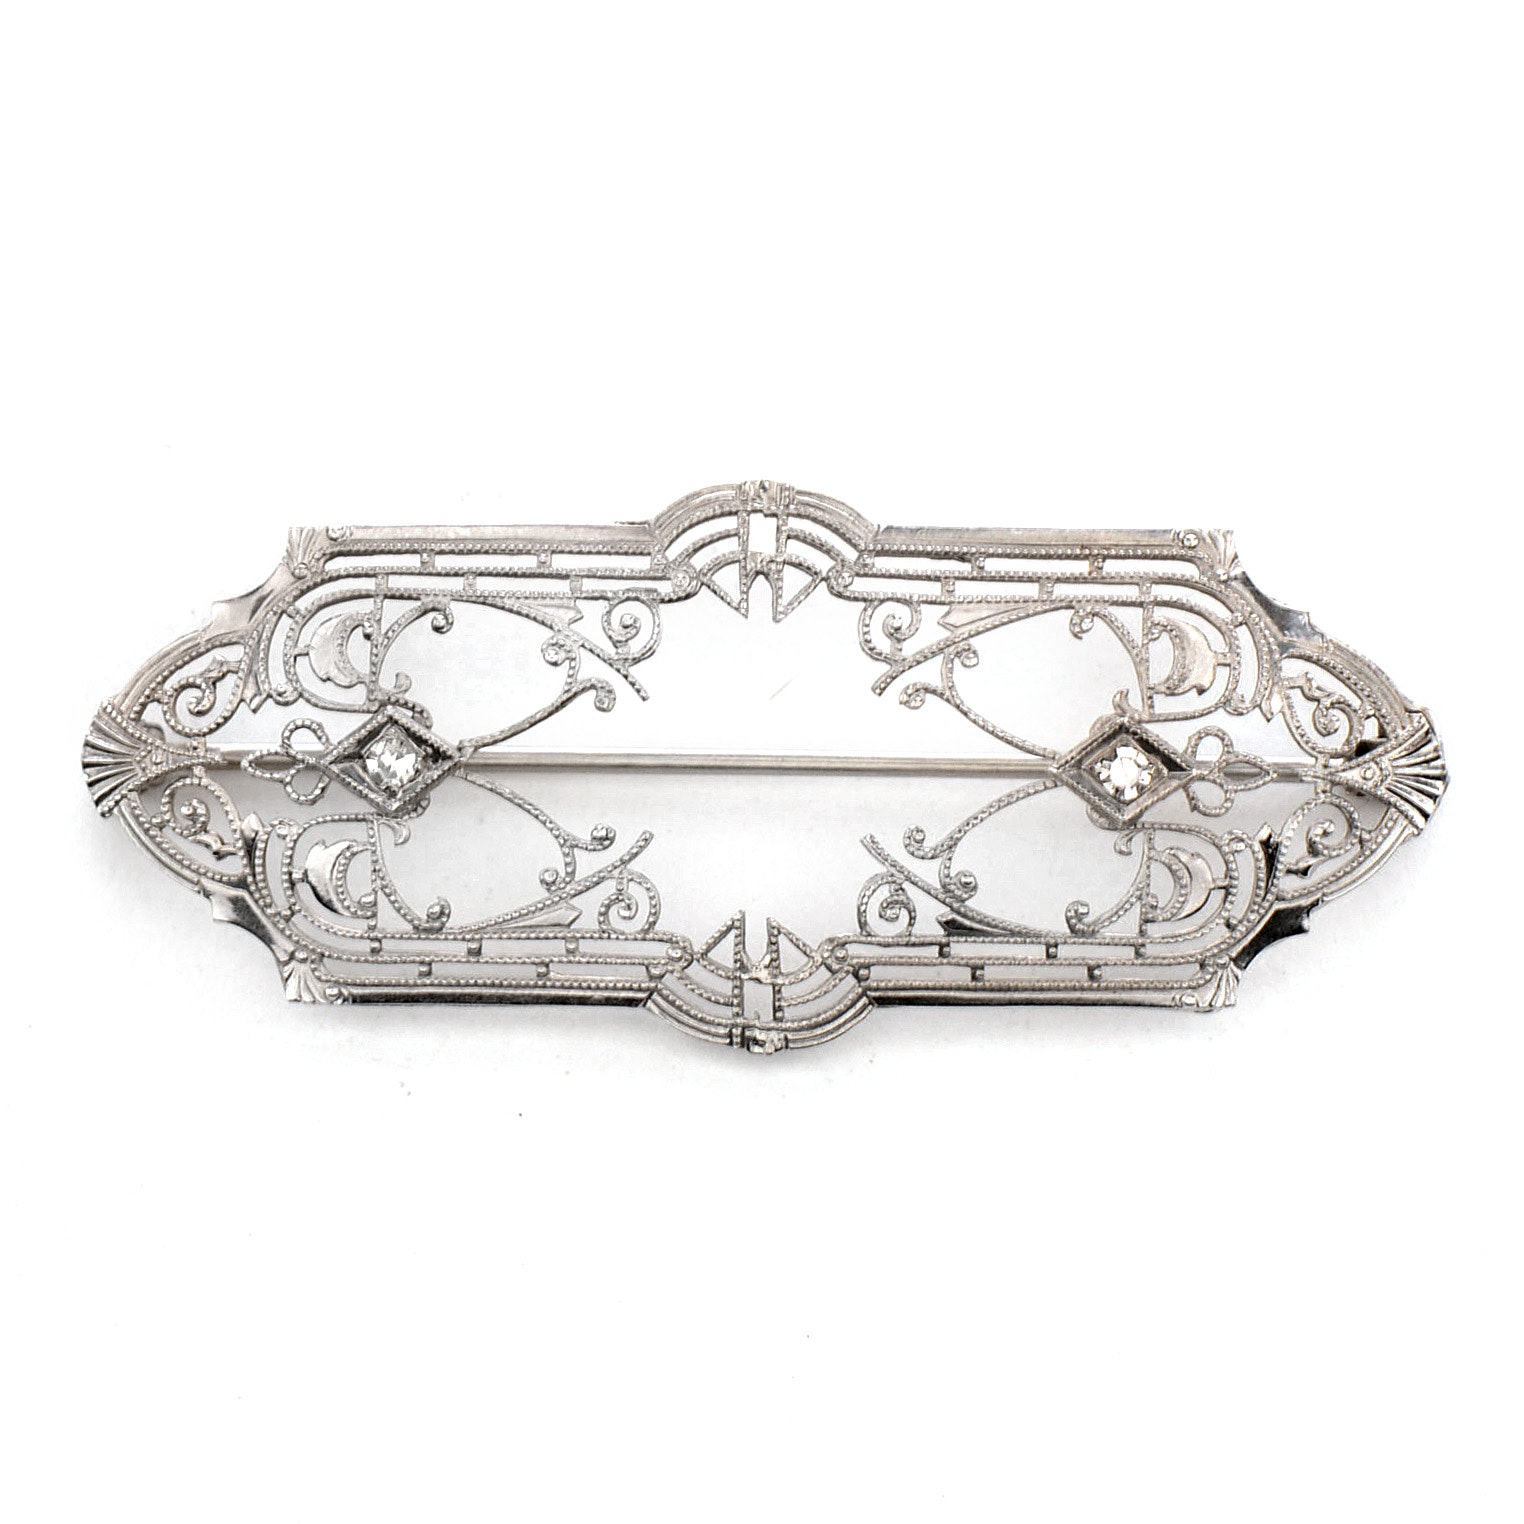 Antique 10K White Gold Filigree Diamond Bar Pin